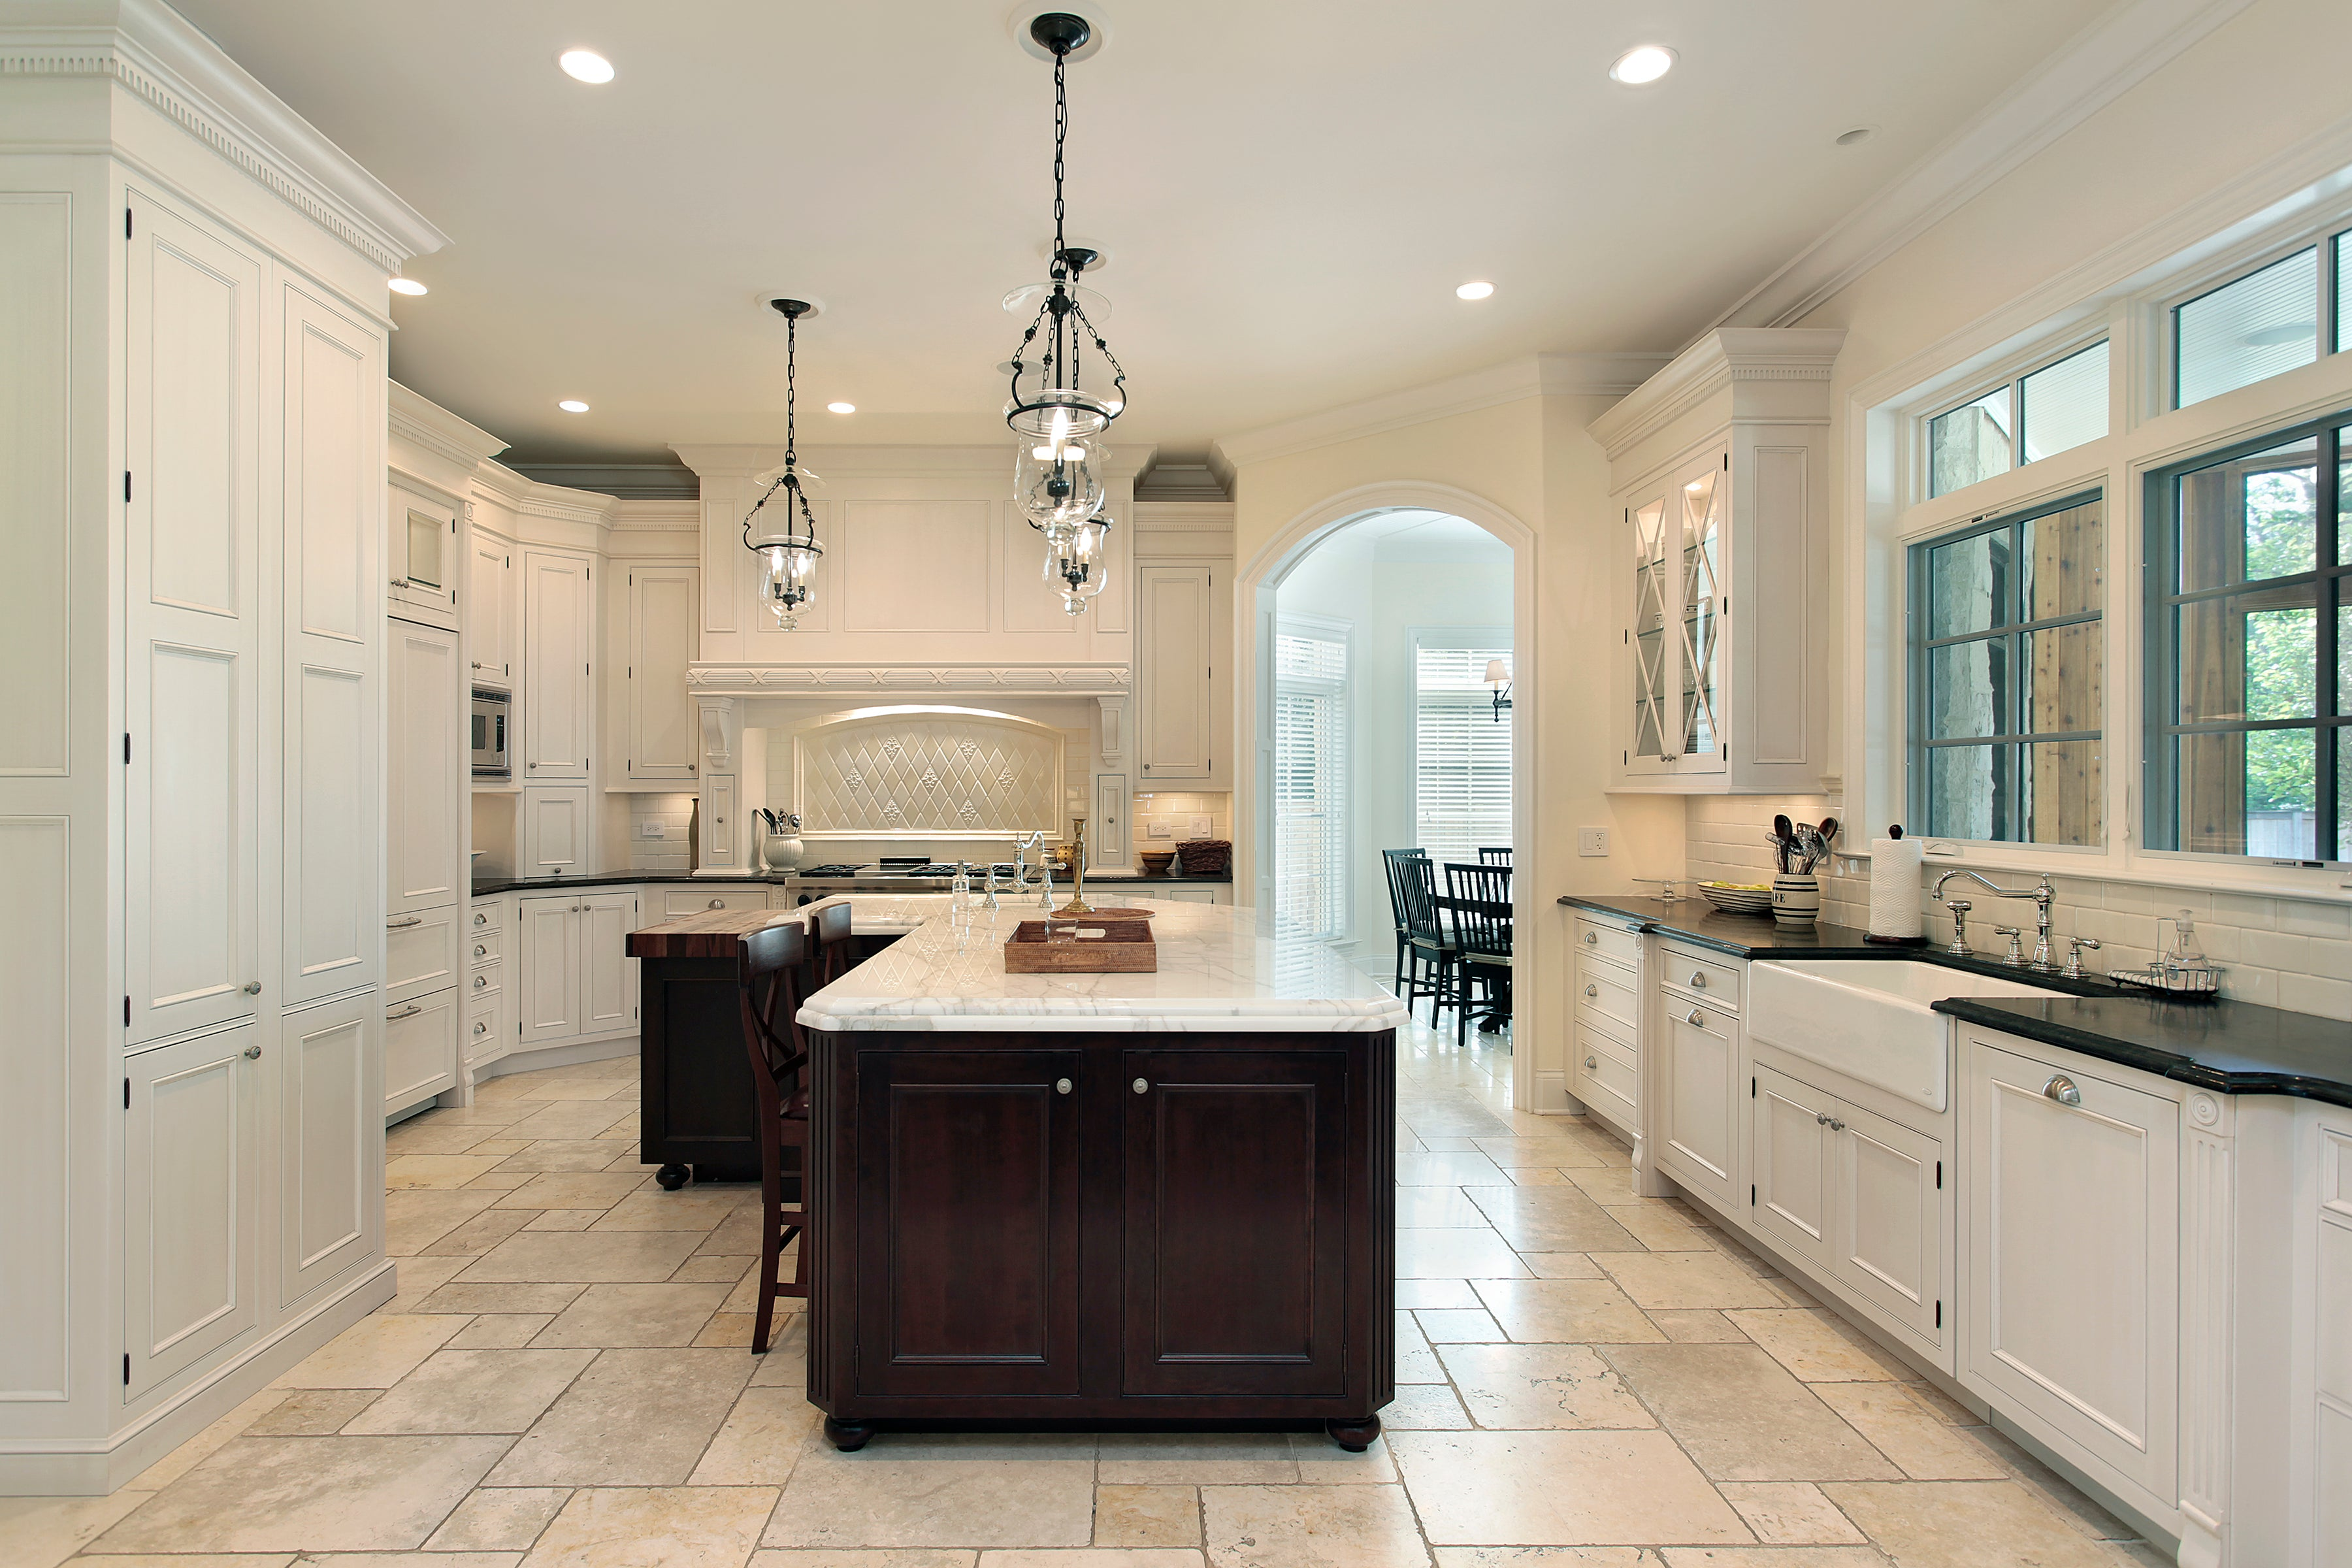 Complete Luxury Kitchens for Sale - ReFind Kitchens